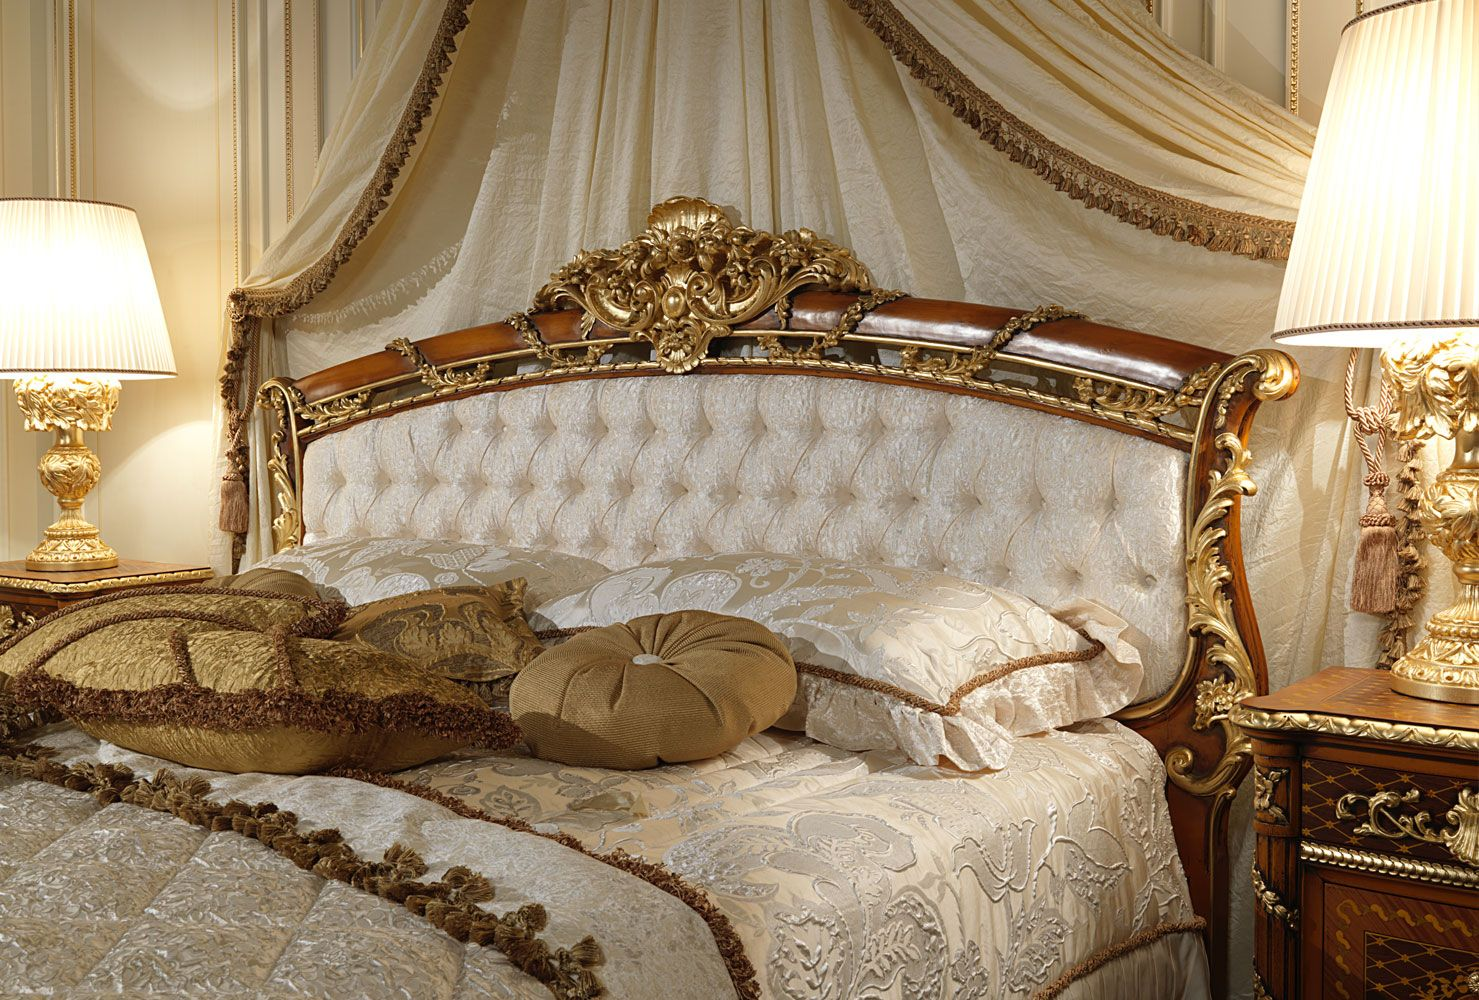 Clic Bed In Carved Walnut With Capitonné Headboard And Gold Leaf Finish Of